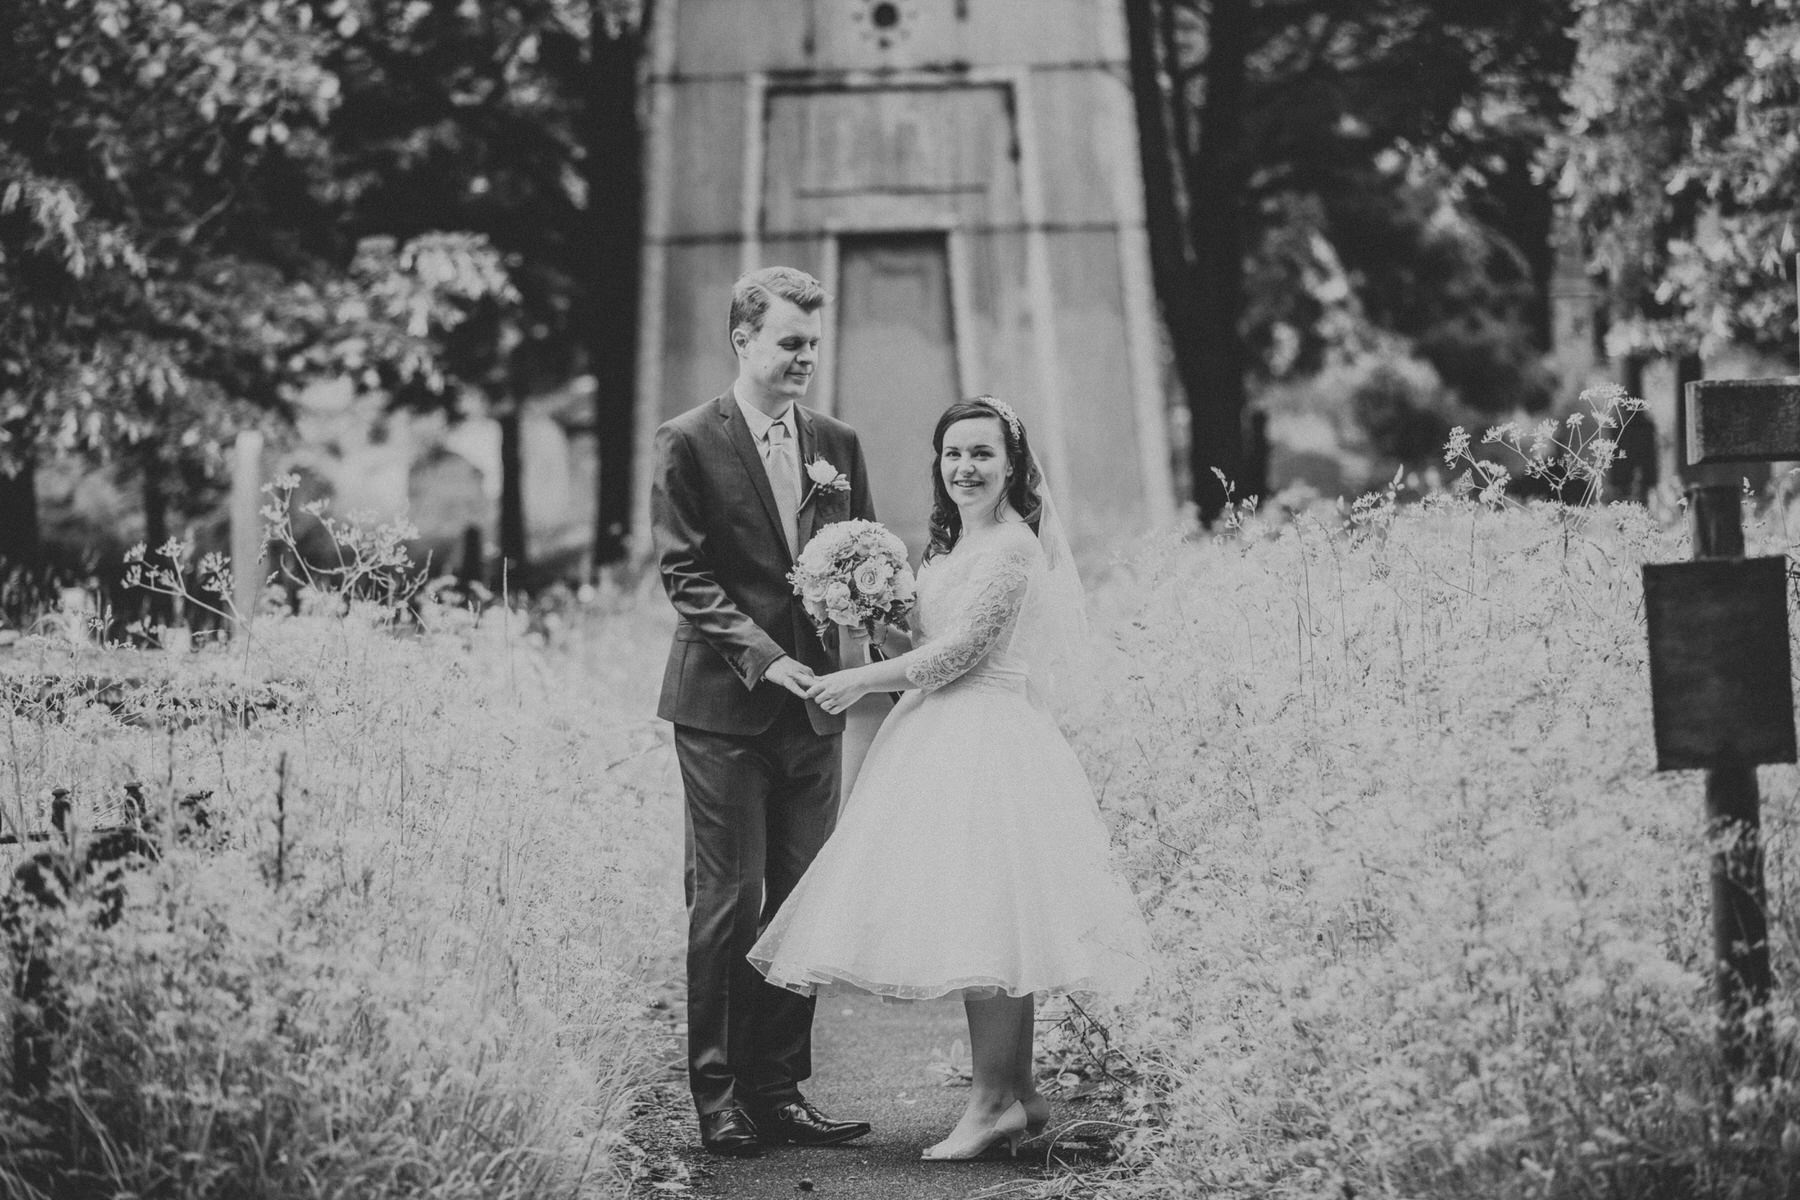 177 BW groom bride wedding portraits Brompton Cemetery.jpg